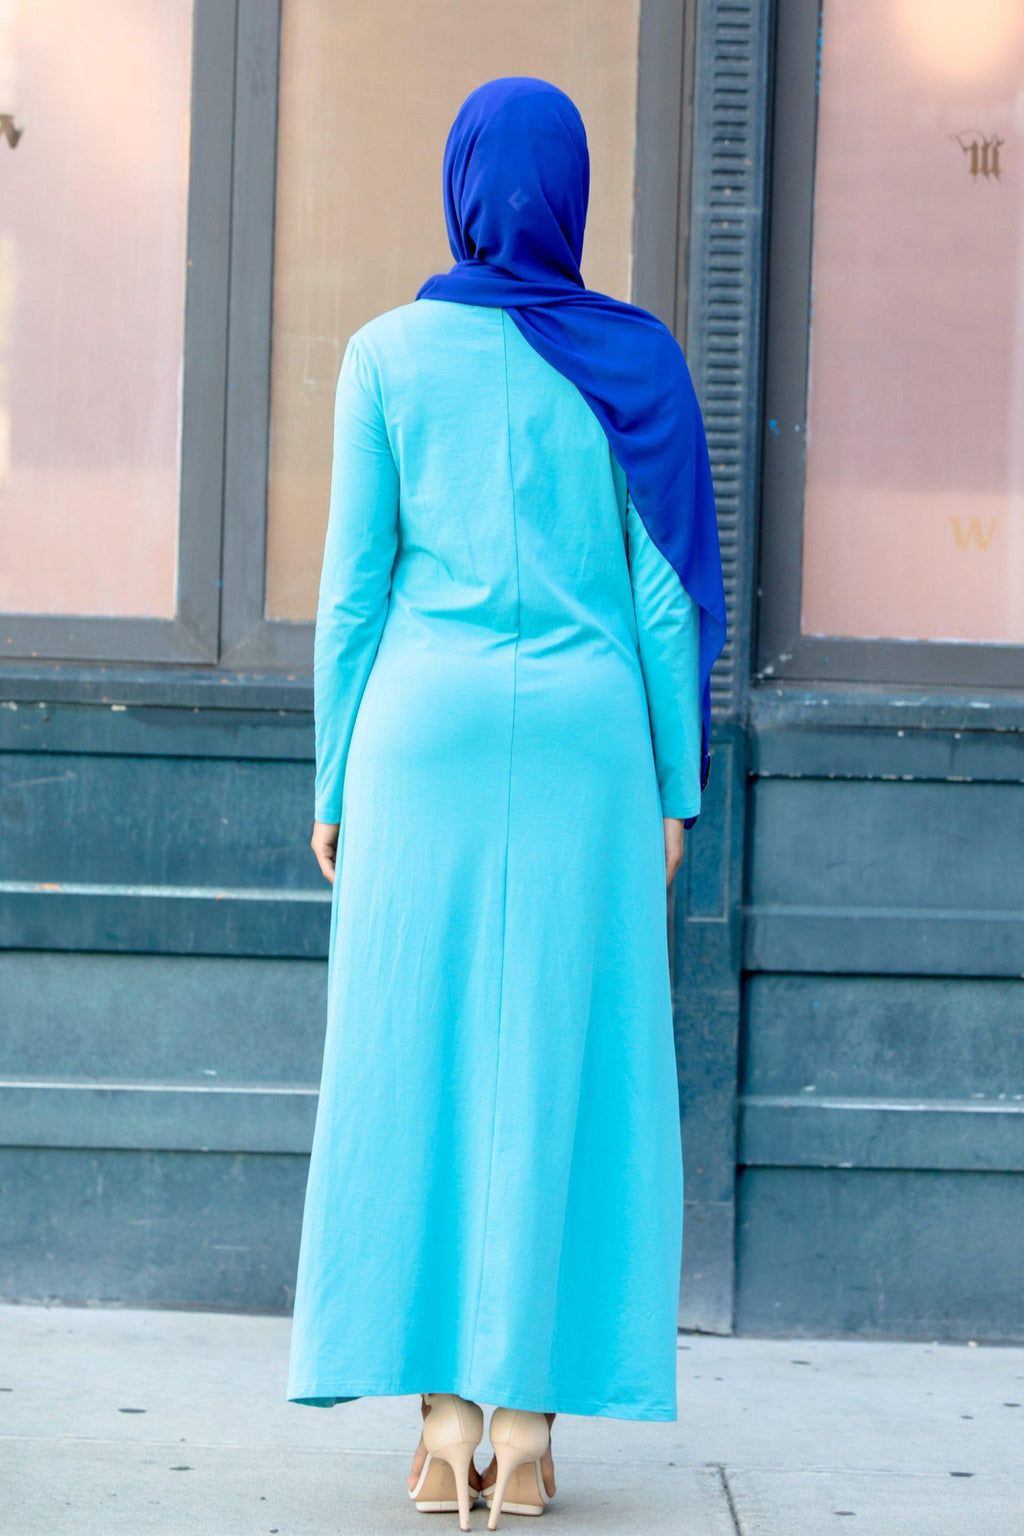 Sea Blue Cotton Long Sleeve Maxi Dress - Abaya, Hijabs, Jilbabs, on sale now at UrbanModesty.com